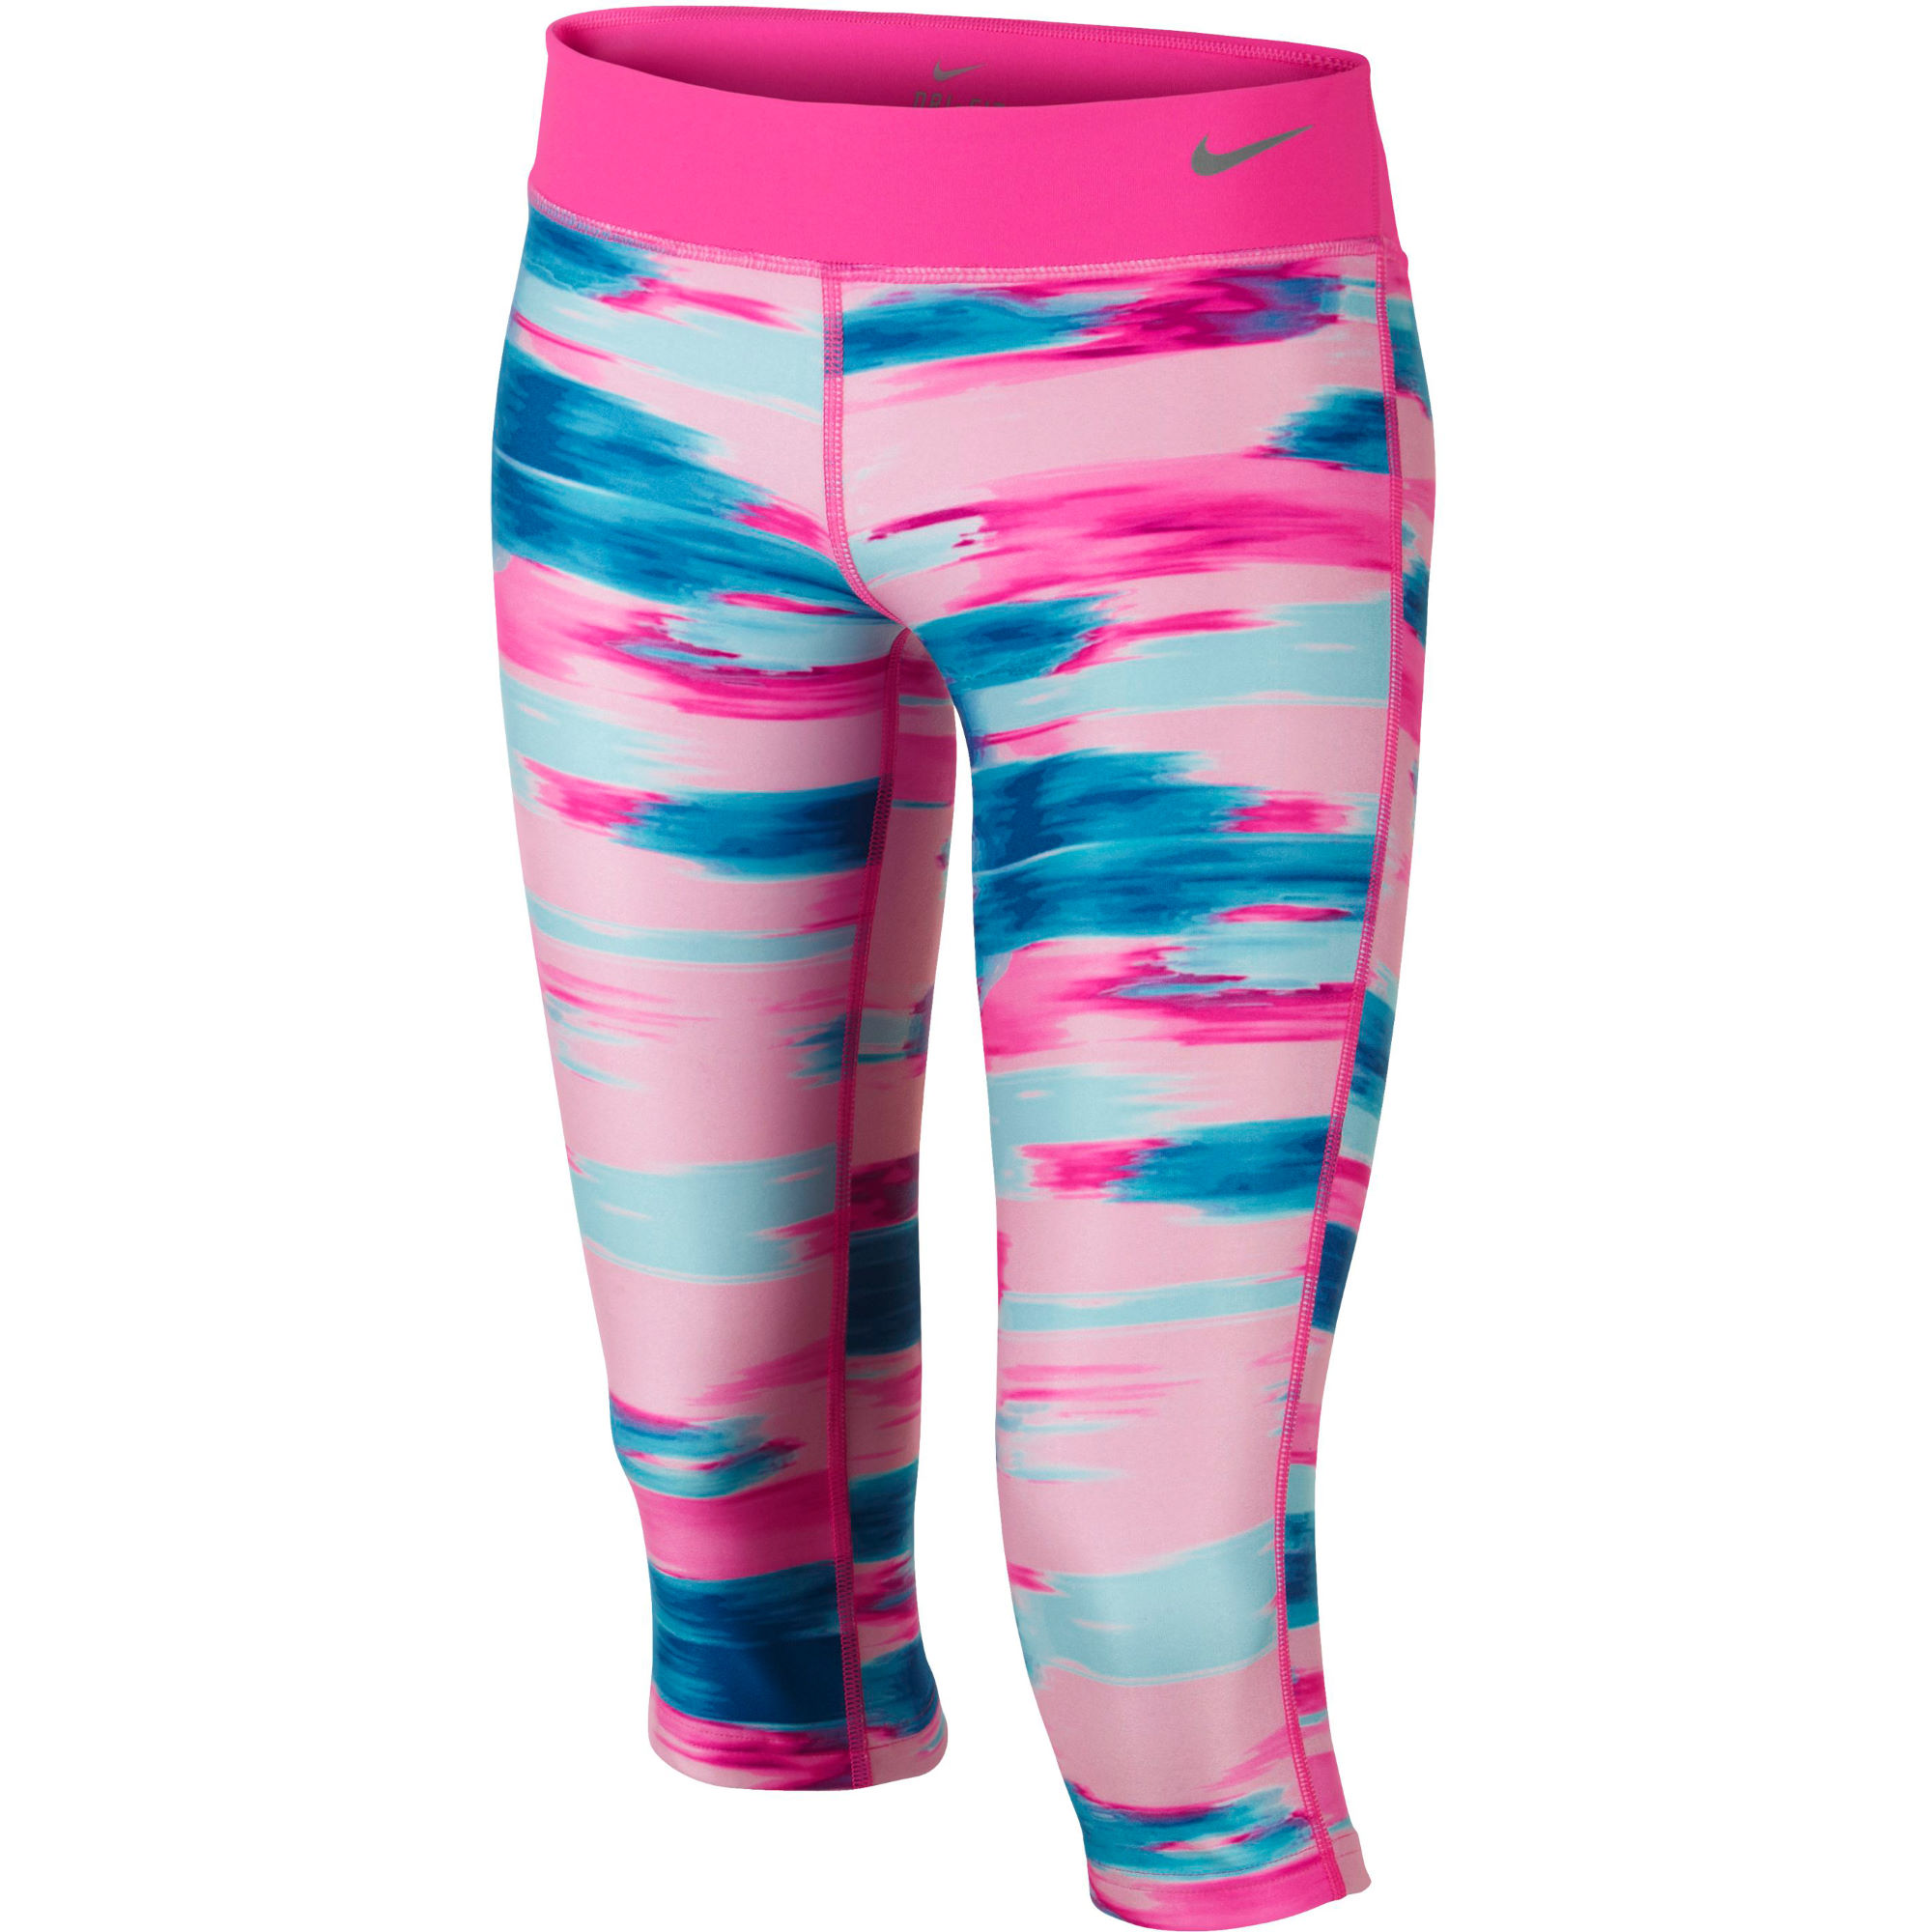 Shop Nike running tights from DICK'S Sporting Goods today. If you find a lower price on Nike running tights somewhere else, we'll match it with our Best Price Guarantee! Check out customer reviews on Nike running tights and save big on a variety of products.